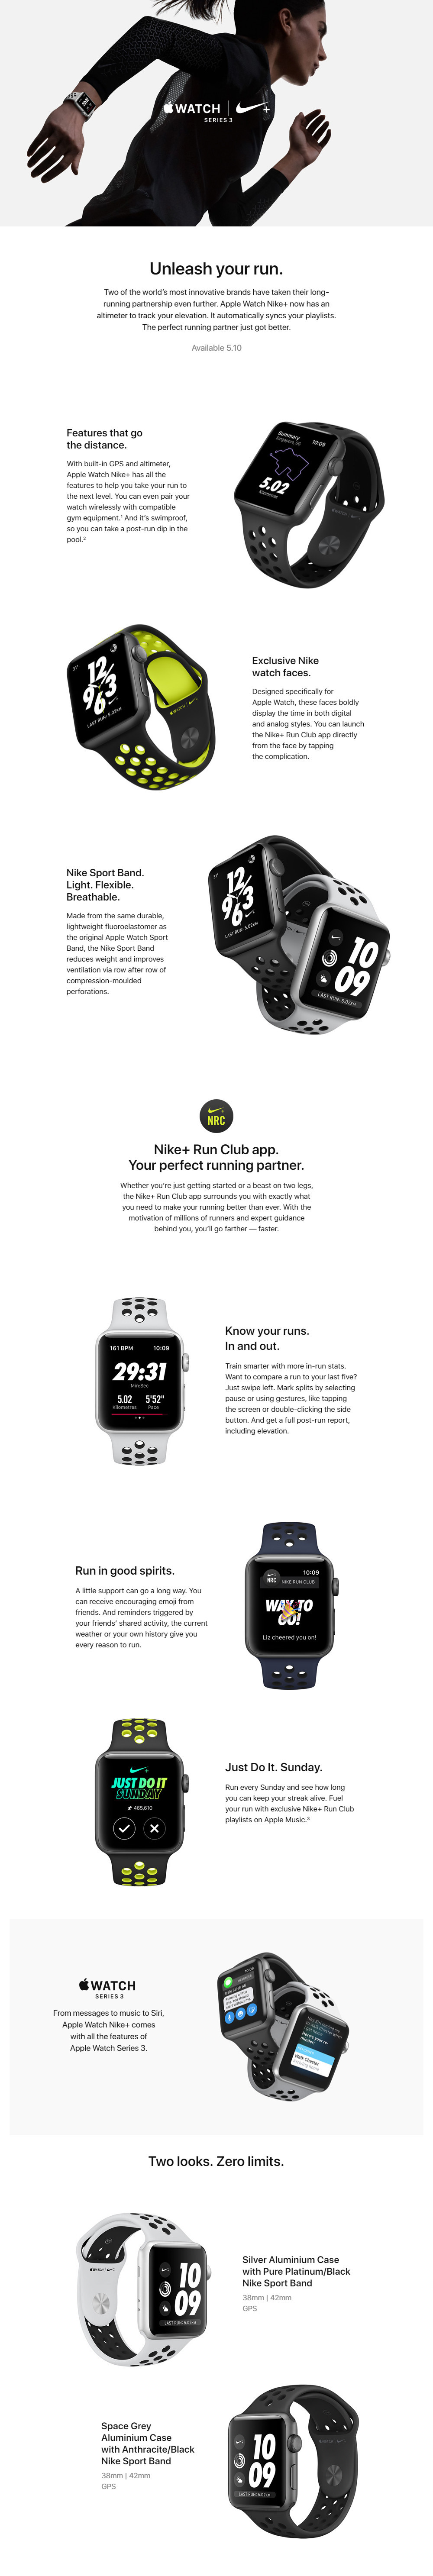 Apple GPS Sports Watch S3 Nike+ 38mm (Space Grey Aluminum Case w/ Anthracite / Black Band)